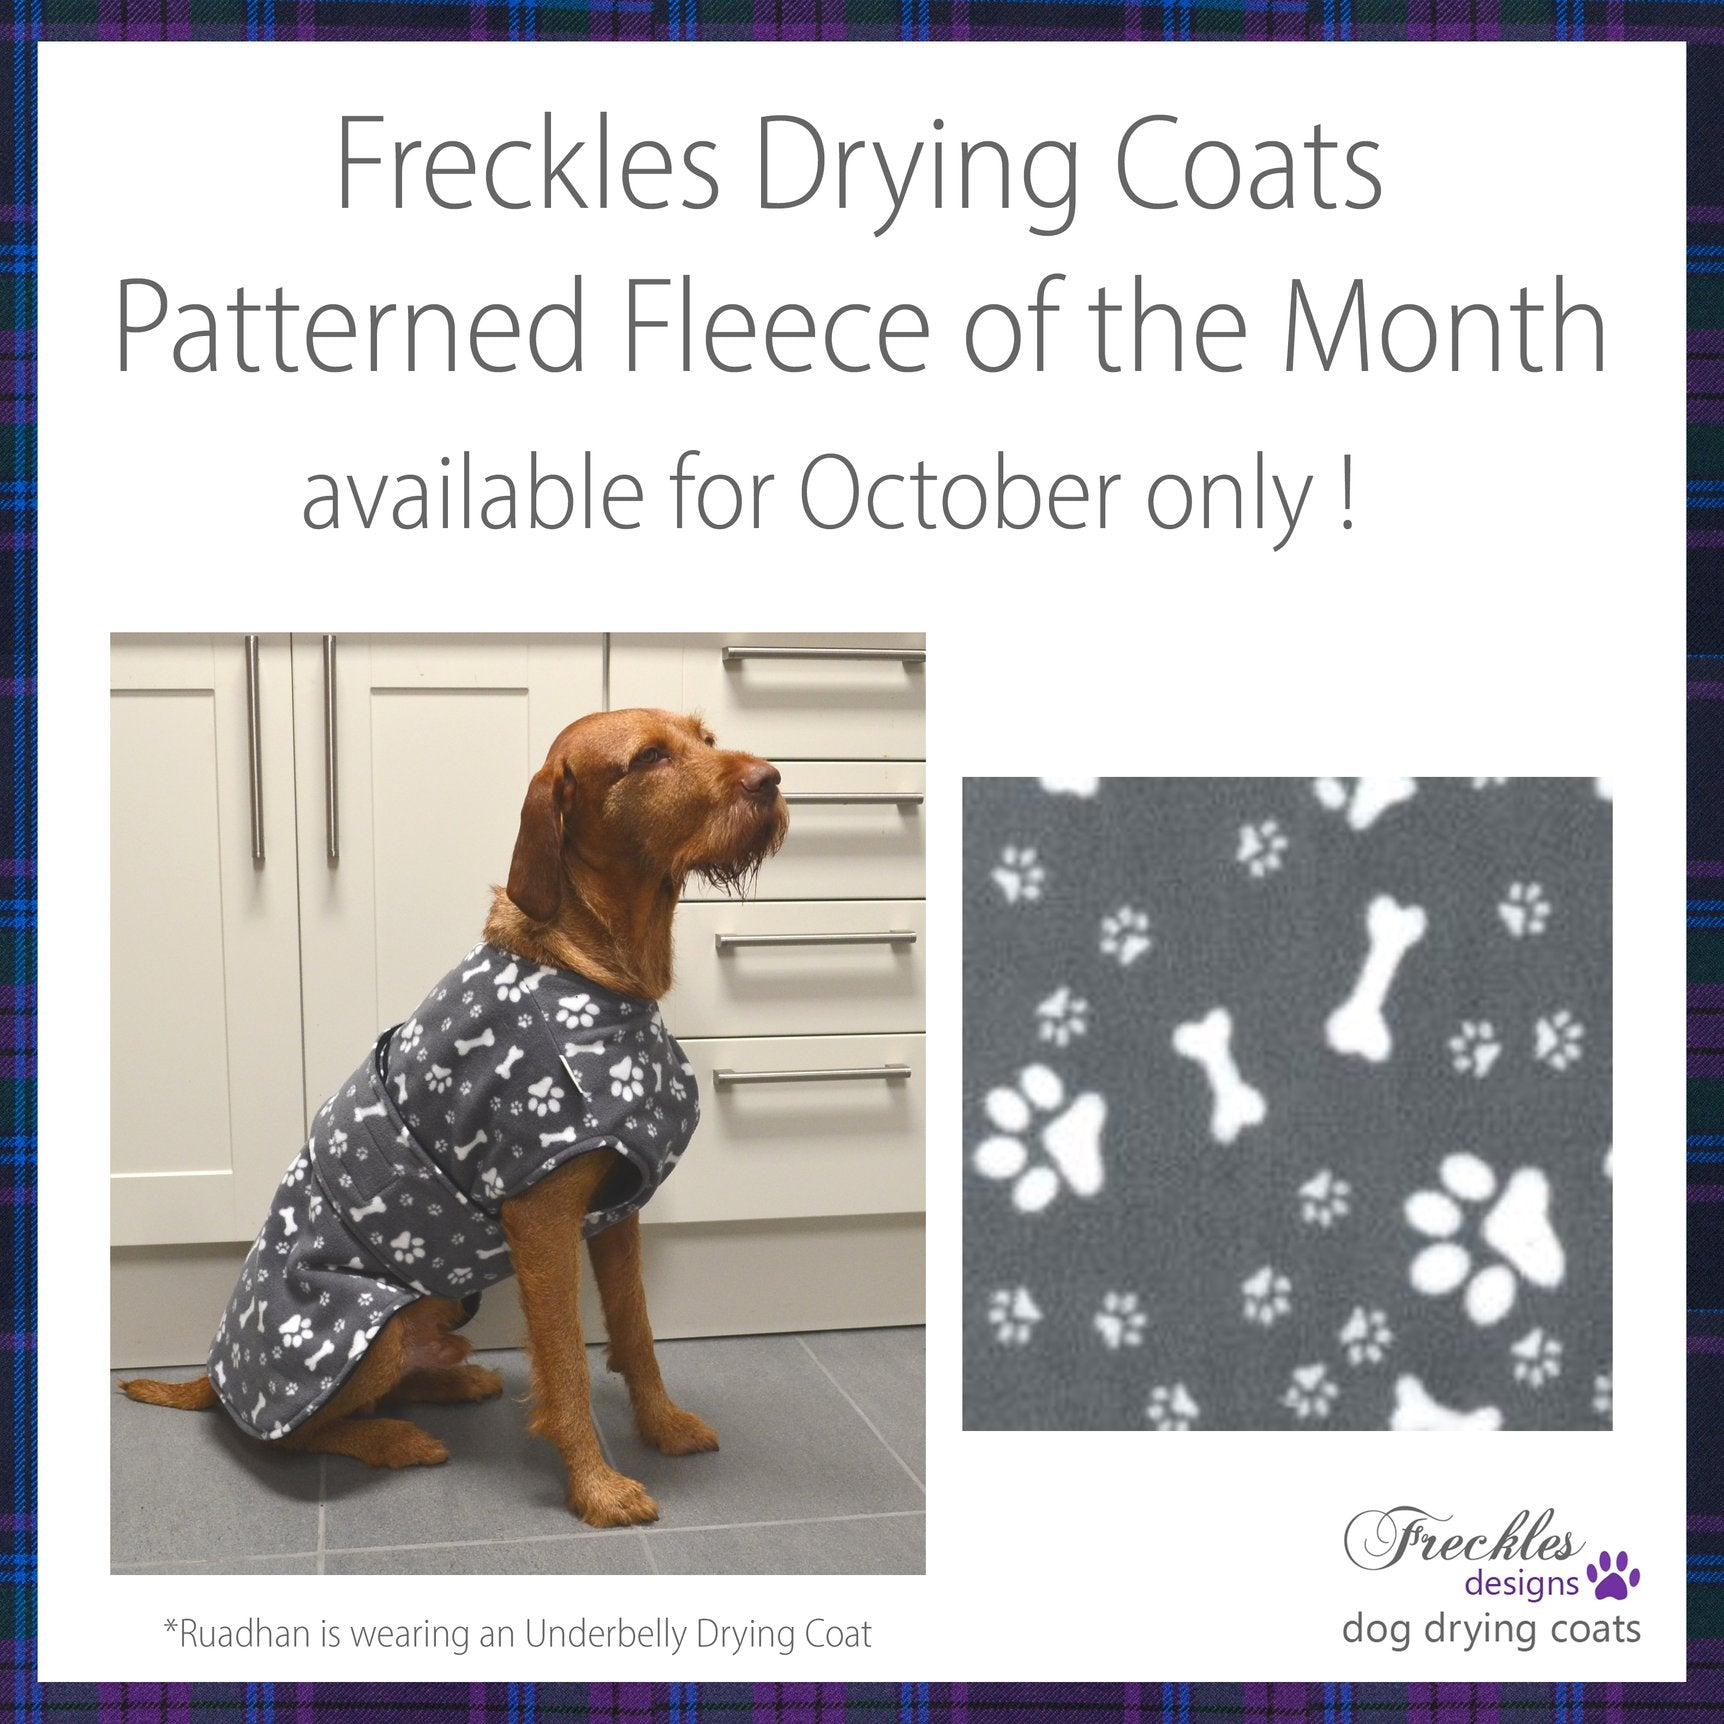 FRECKLES UNDERBELLY DRYING COAT